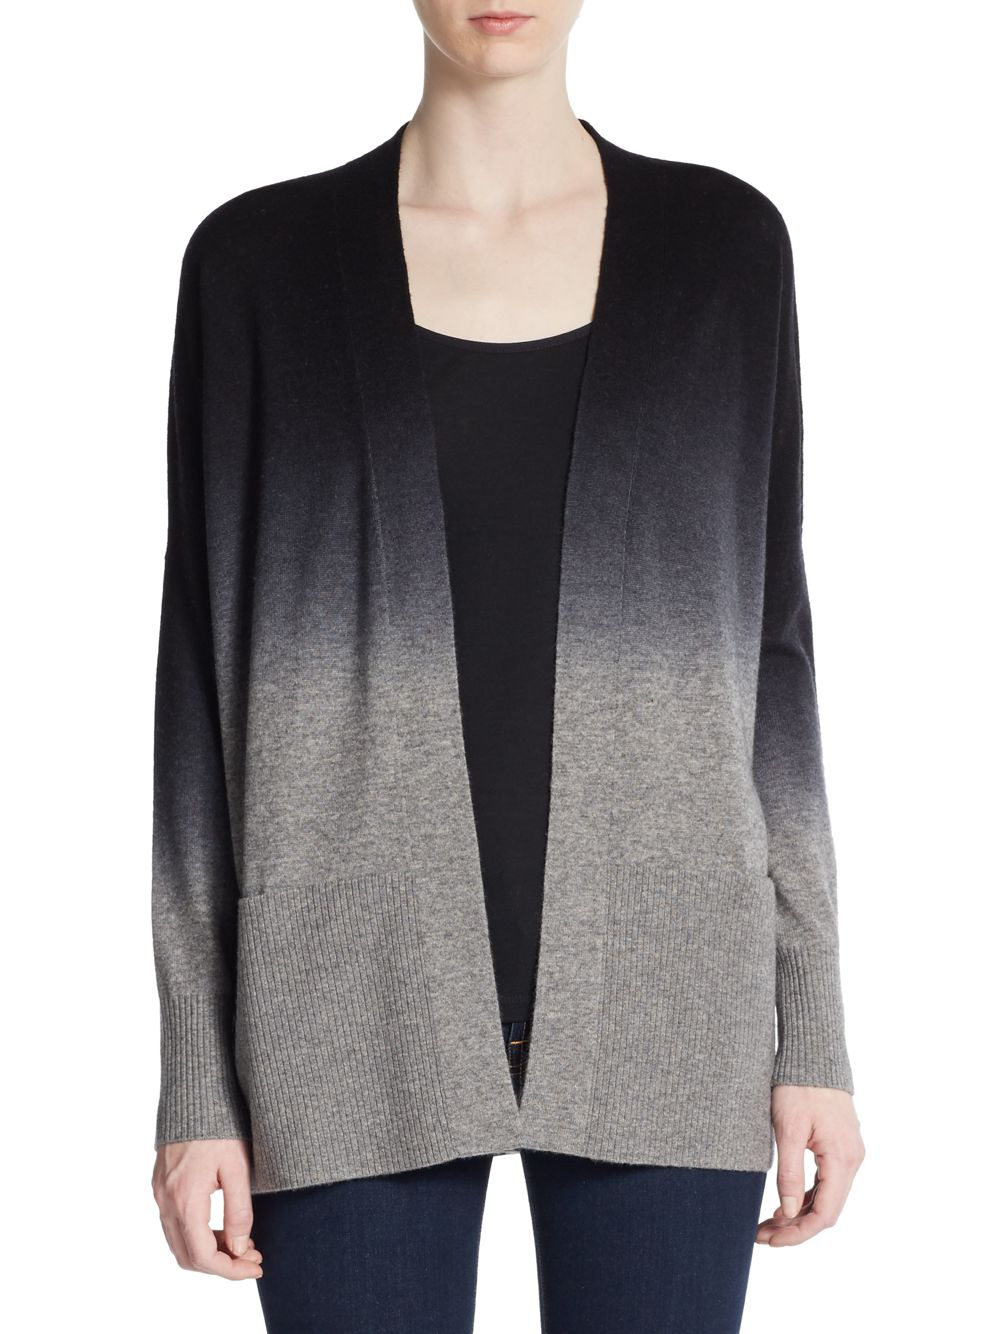 Vince Ombré Wool/cashmere Cardigan in Gray   Lyst